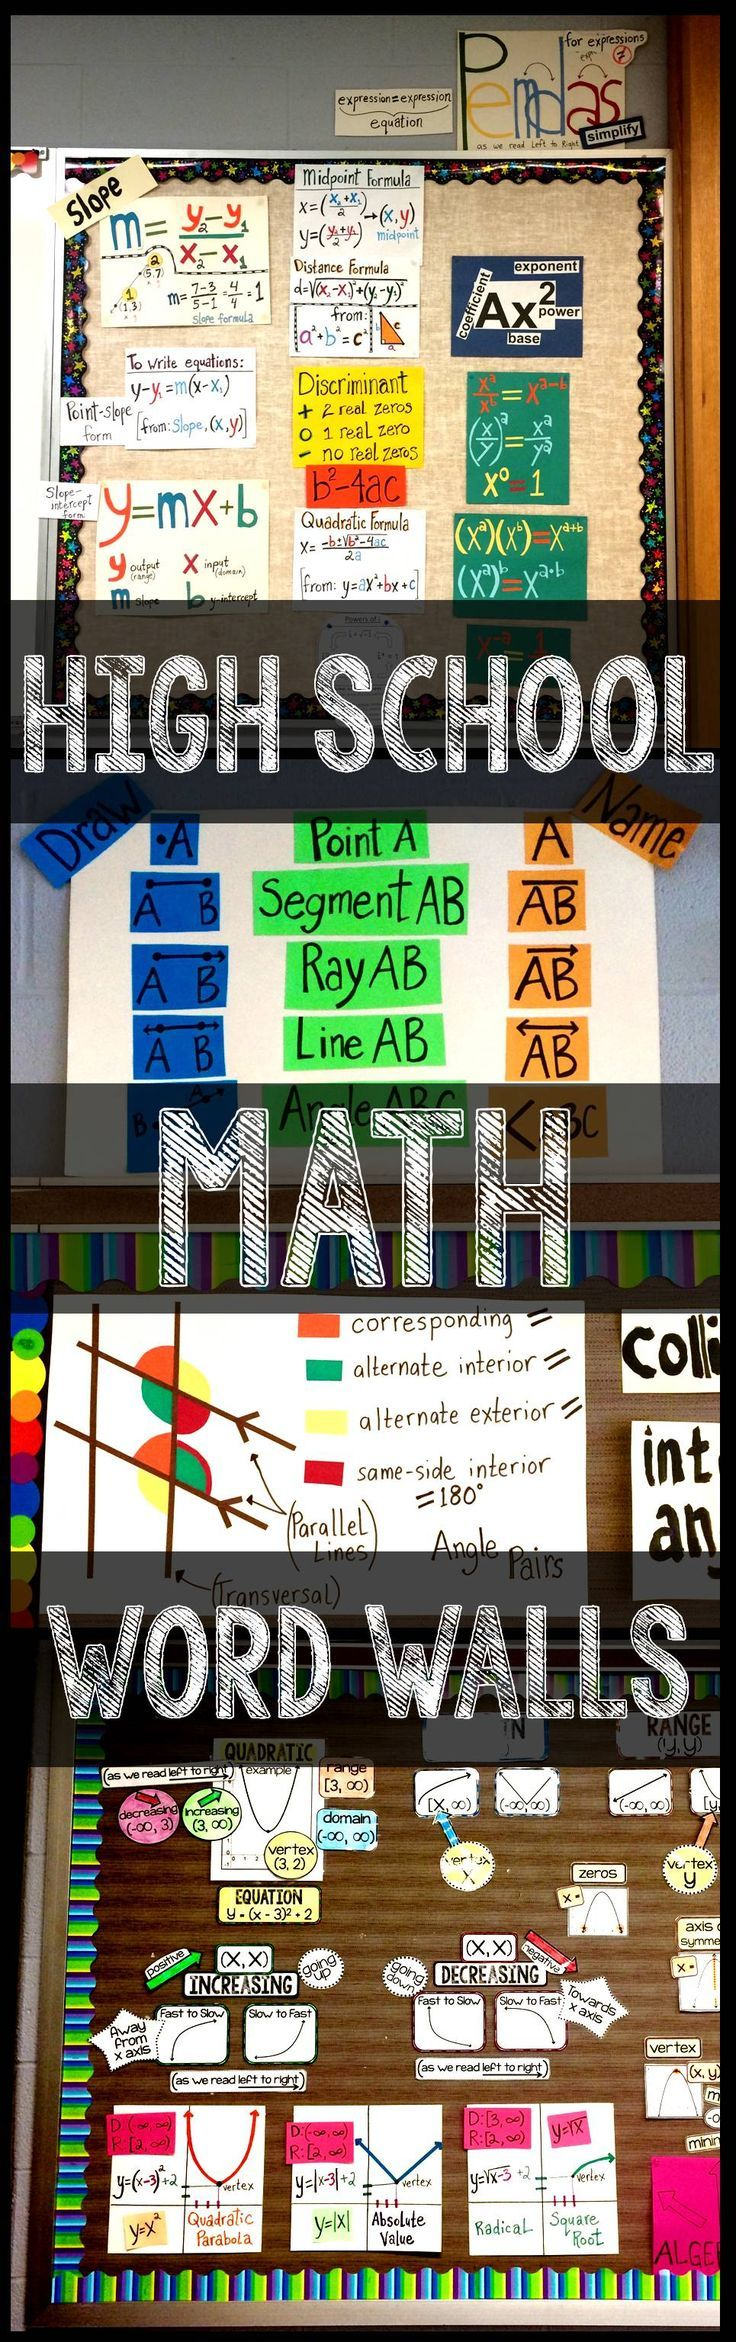 high school math word wall ideas for a classroom bulletin board. Photos from algebra, geometry and algebra 2 word walls showing vocabulary in context.